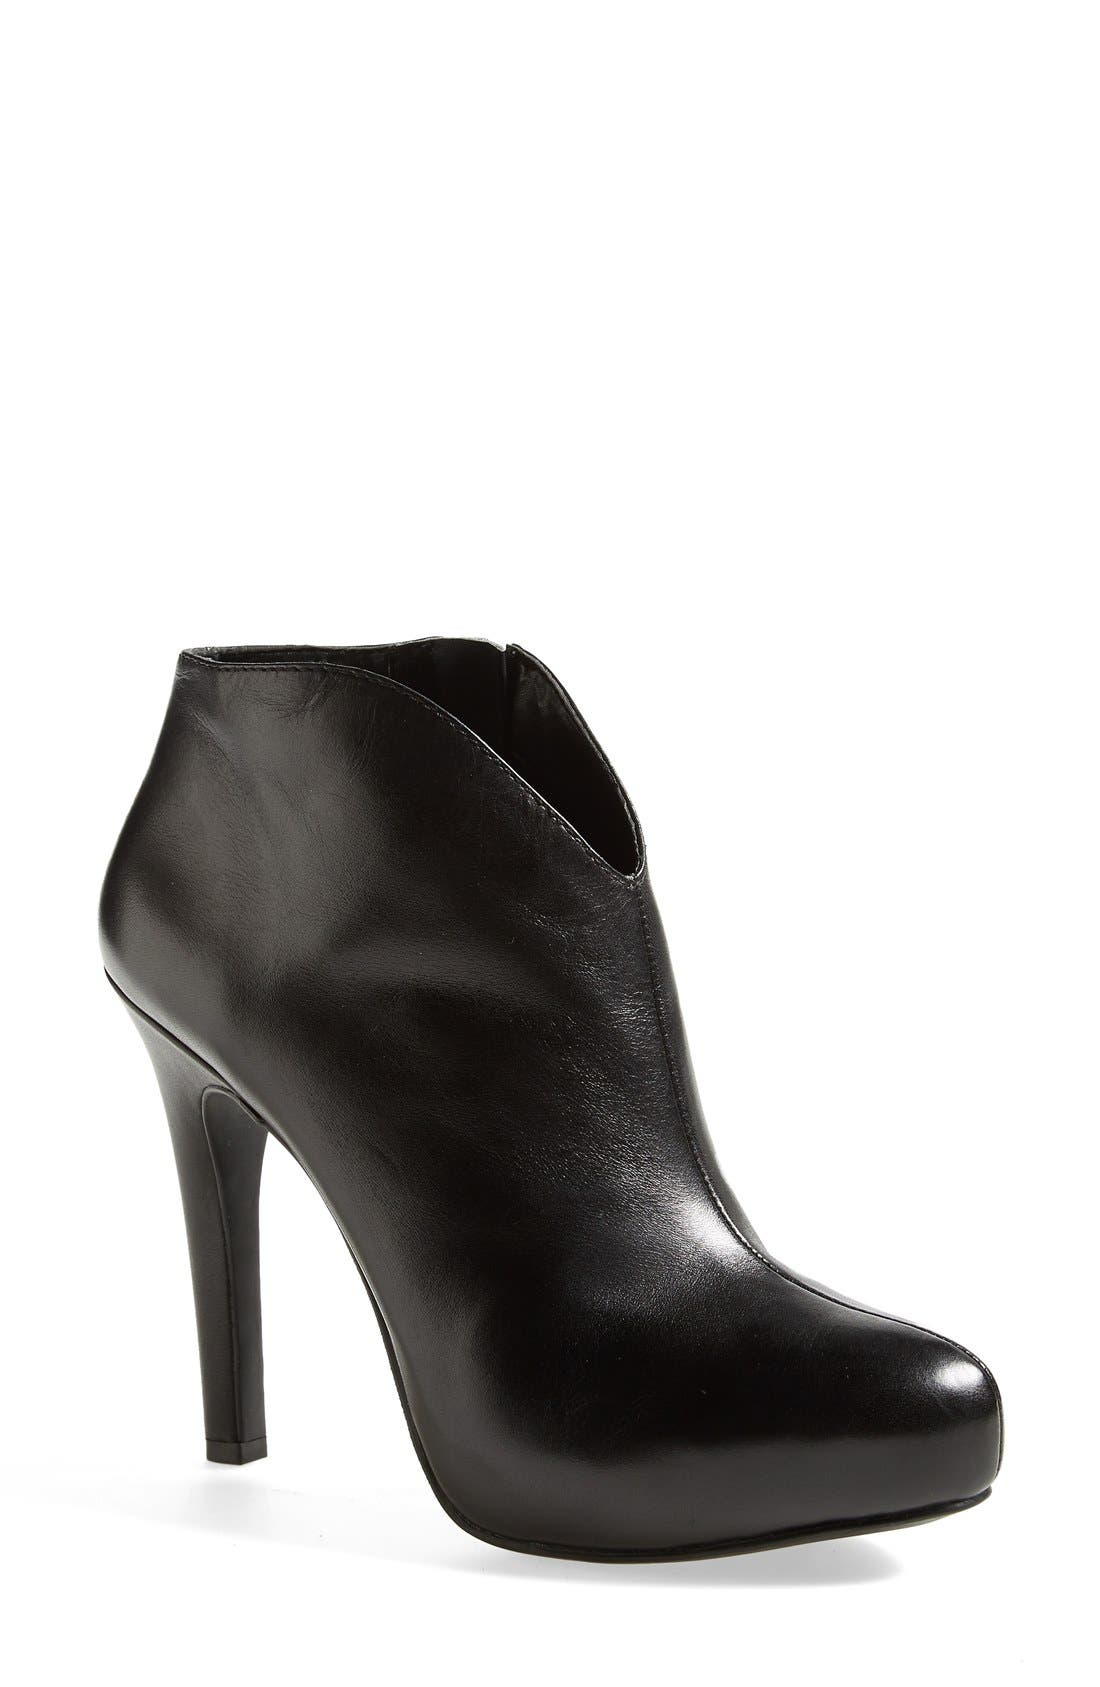 Alternate Image 1 Selected - Jessica Simpson 'Arriel' Bootie (Women)